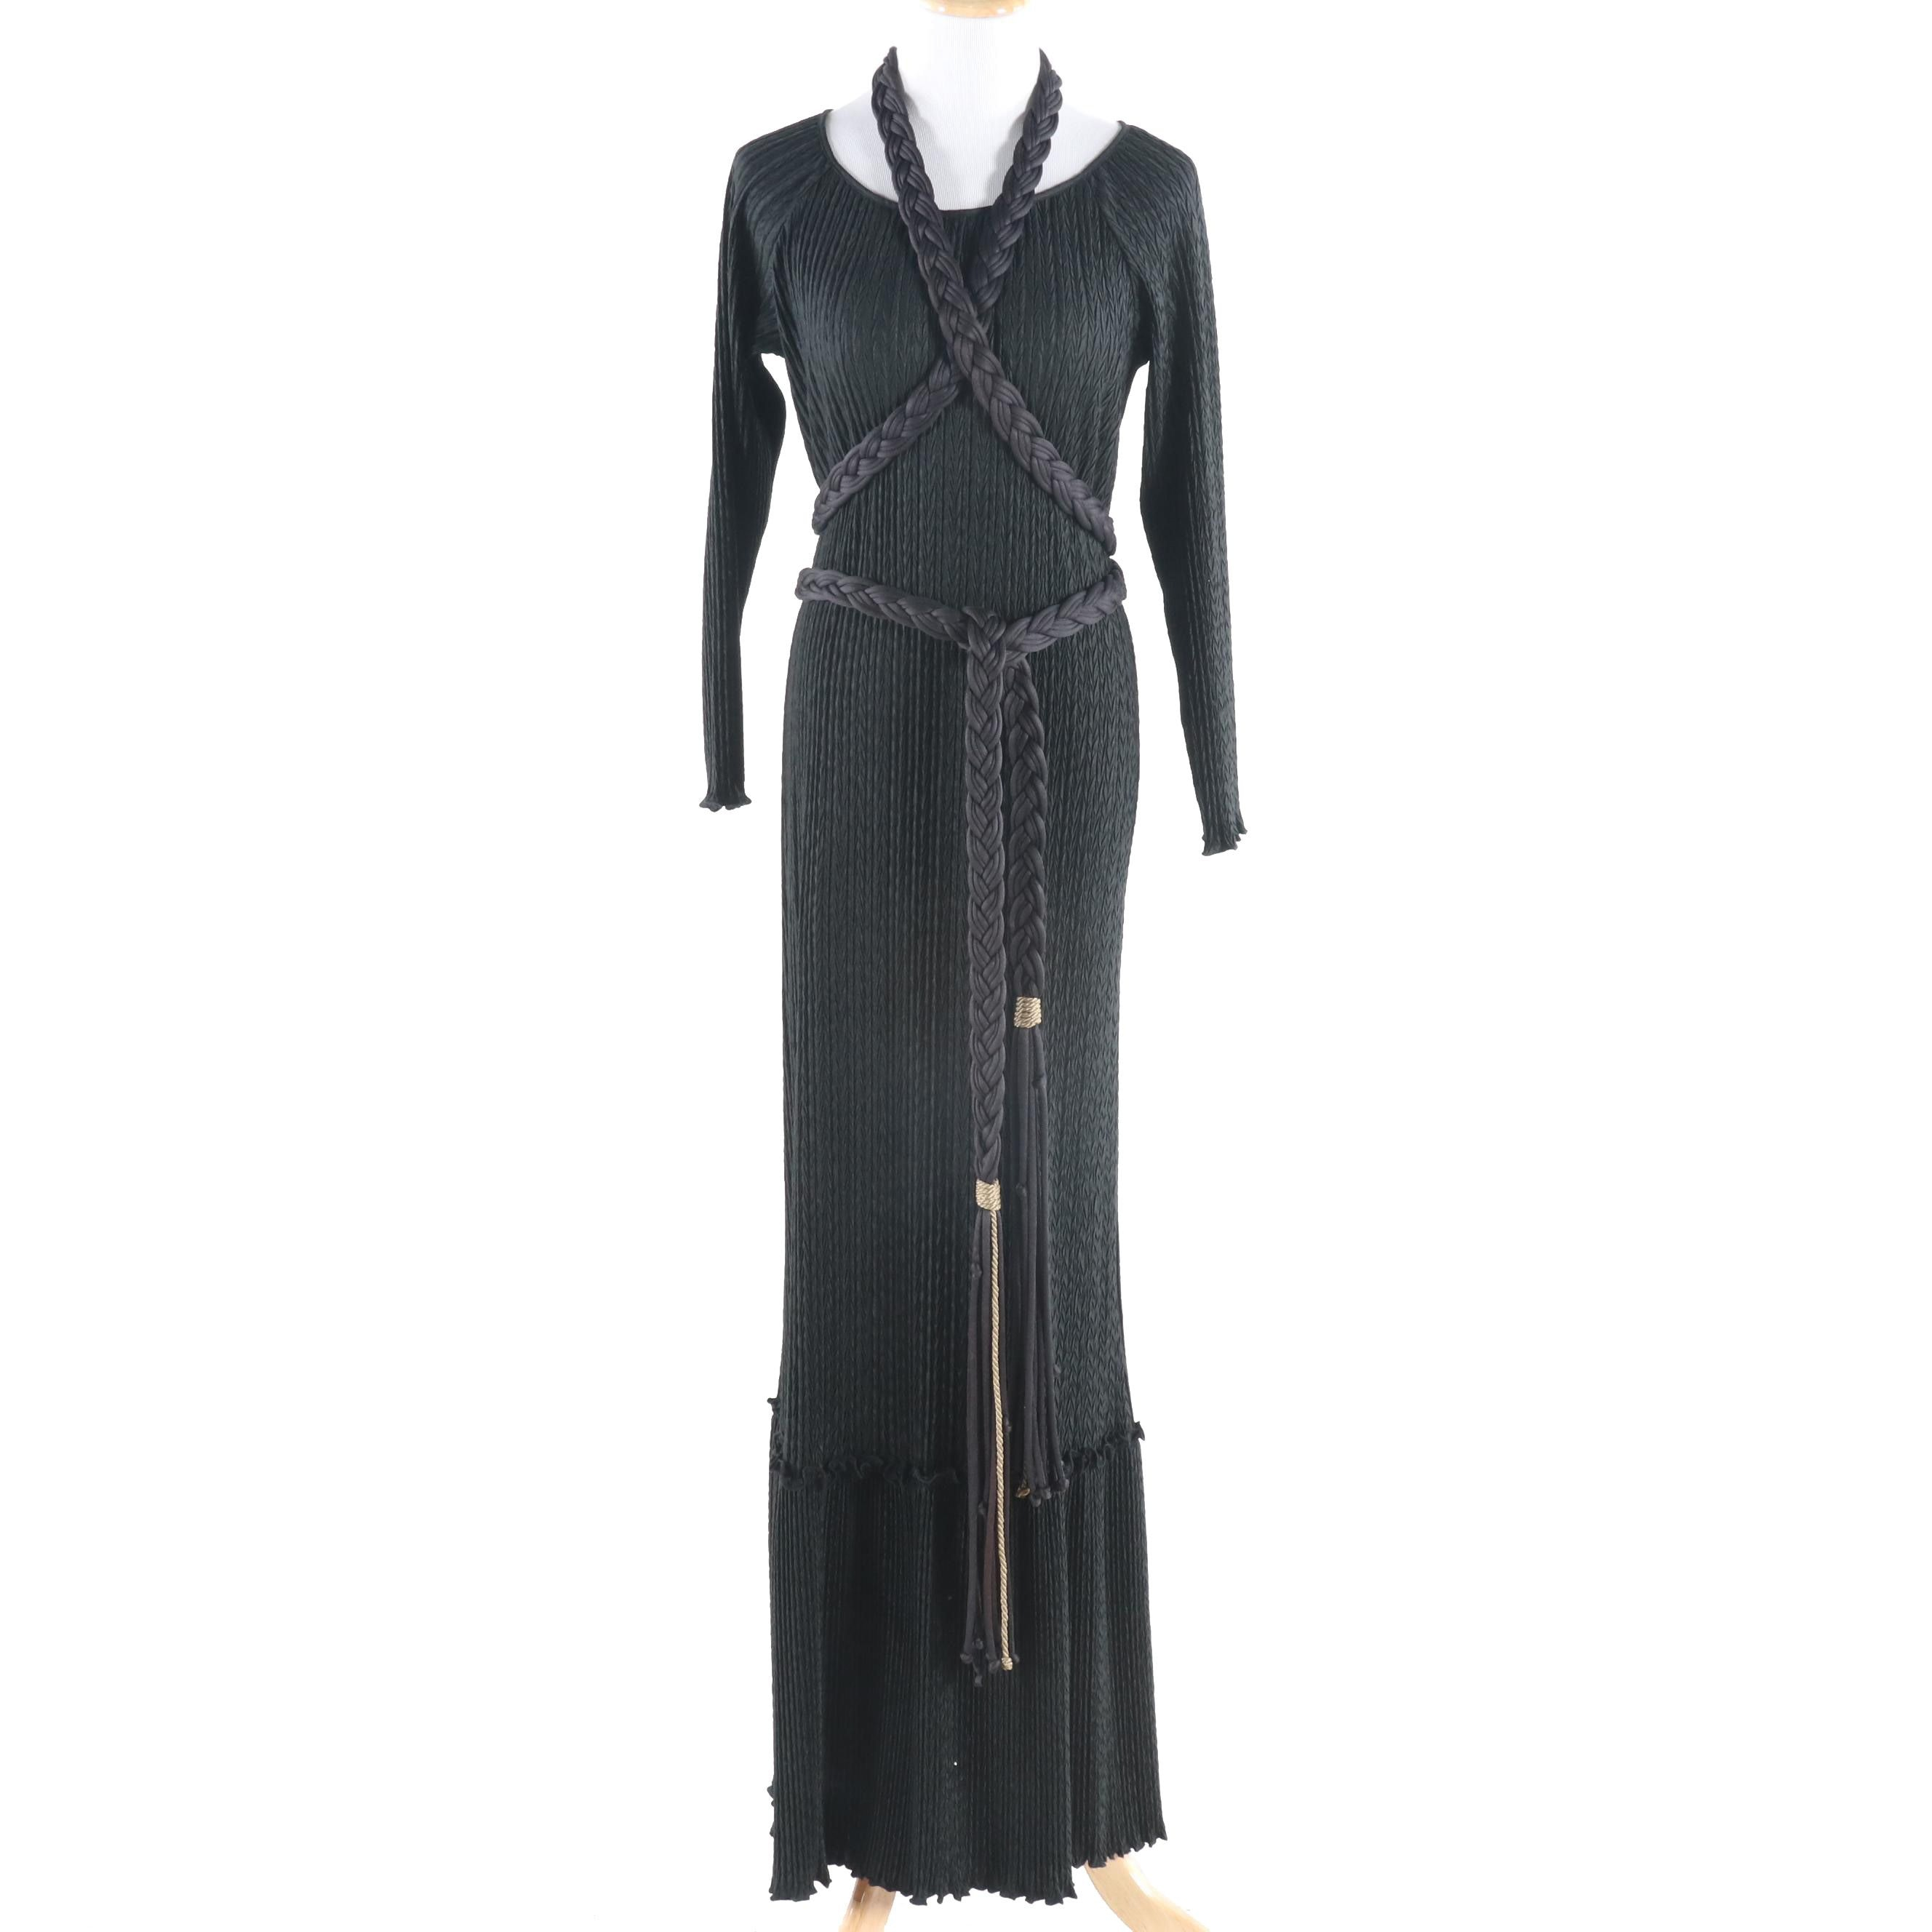 Mary McFadden Collection I Black Textured Plissé Gown with Braided Wrap